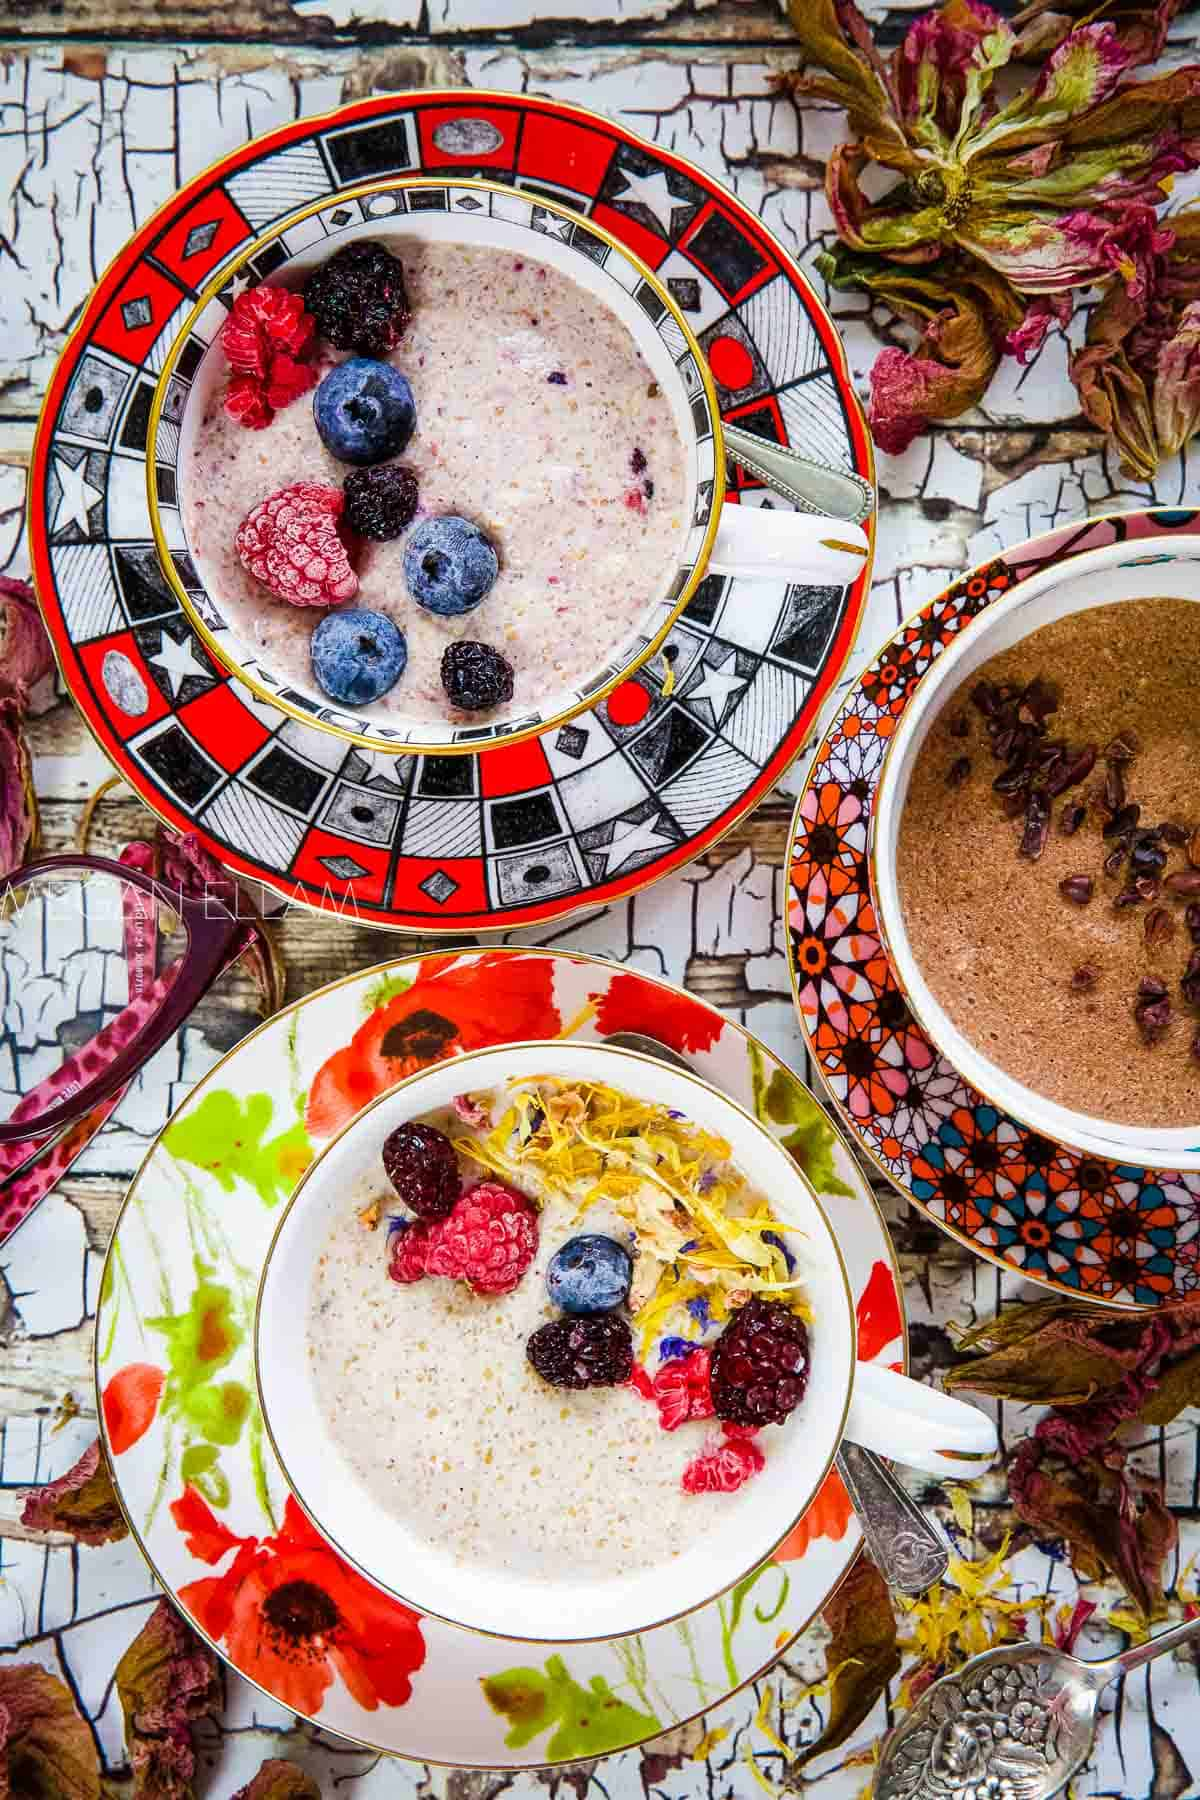 Keto oatmeal with various flavours and toppings.